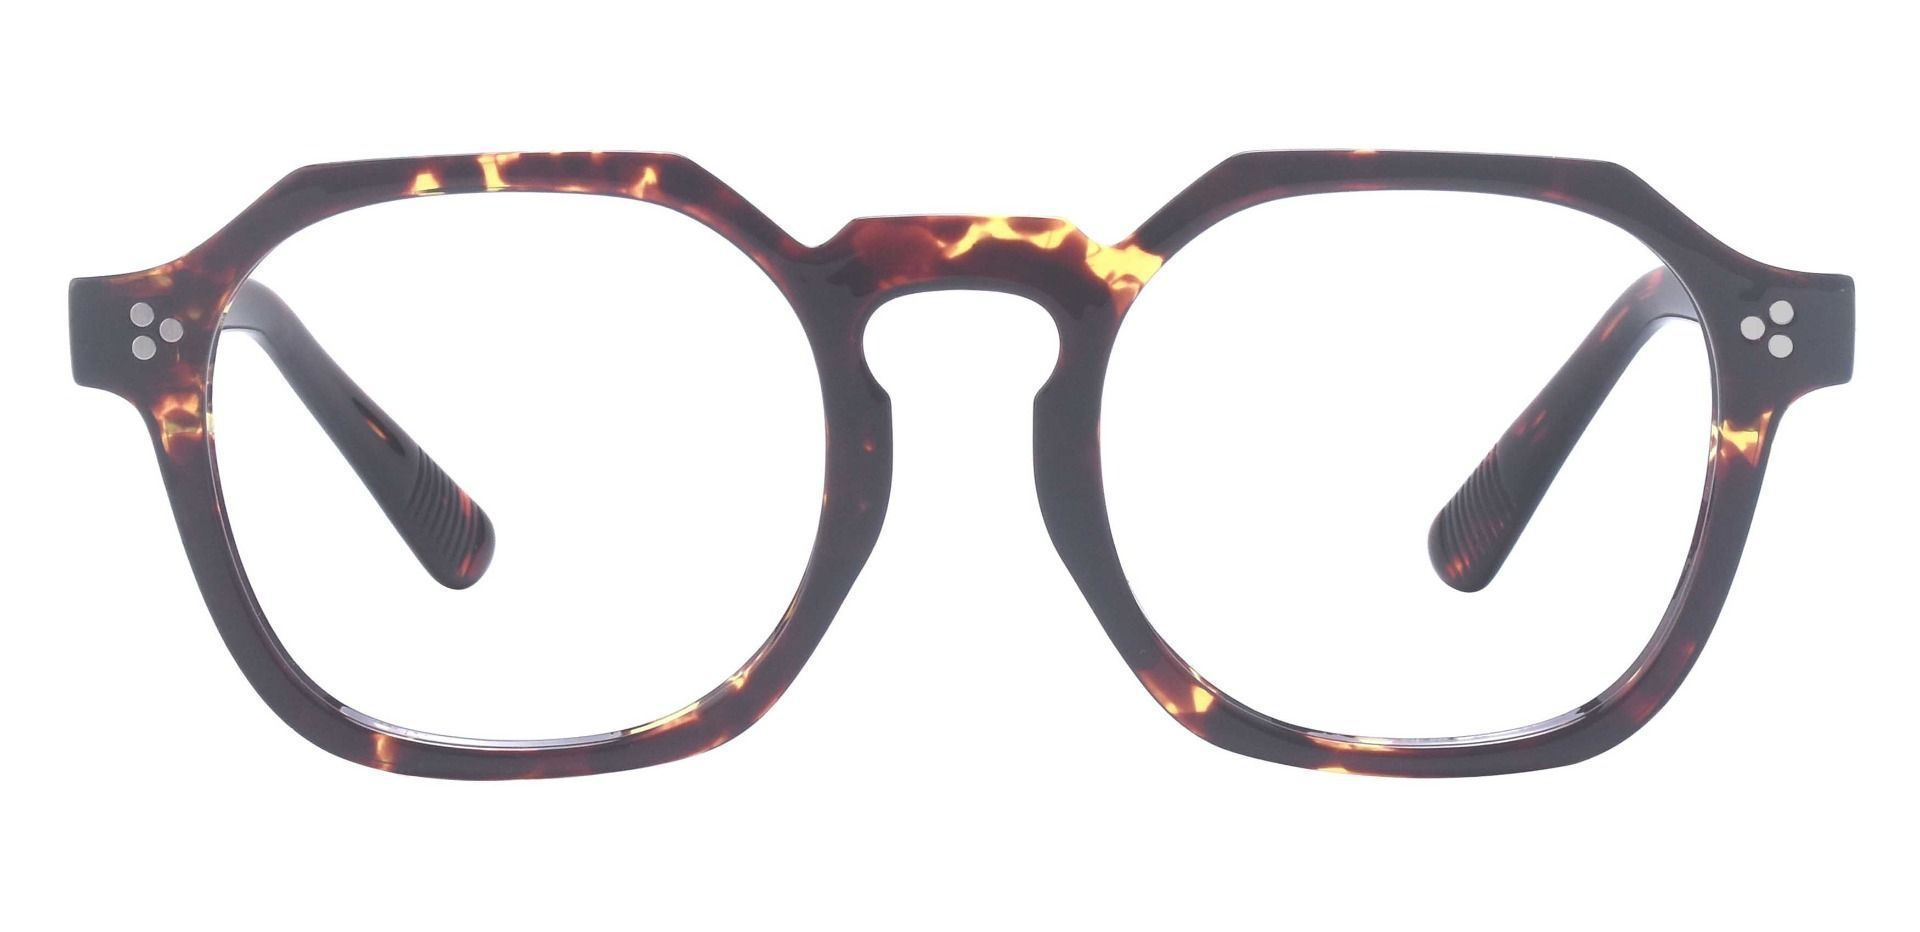 Bisbee Geometric Prescription Glasses - Tortoise